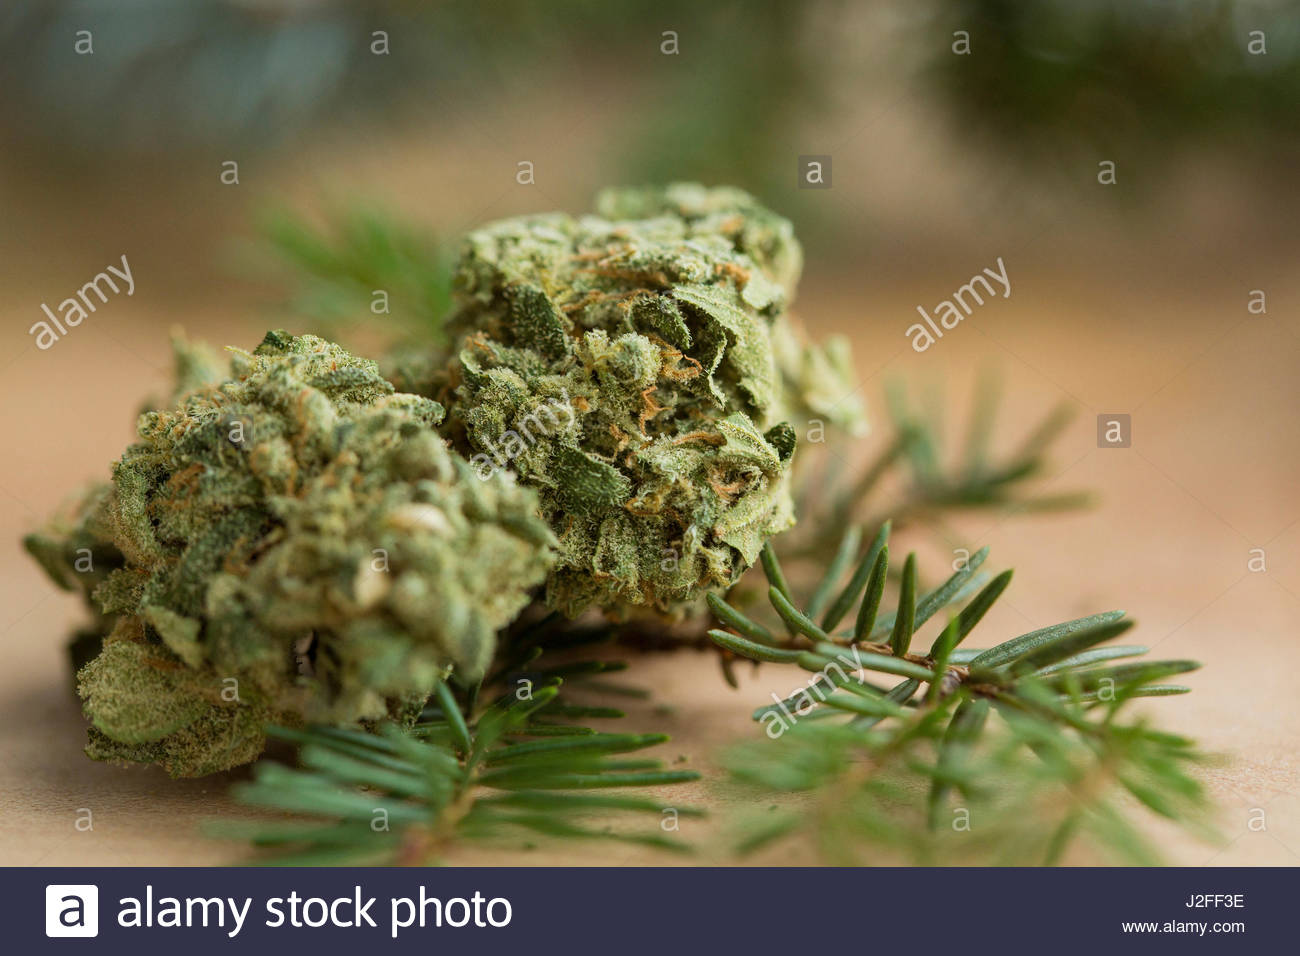 Table top with the Jack Herer strain. - Stock Image